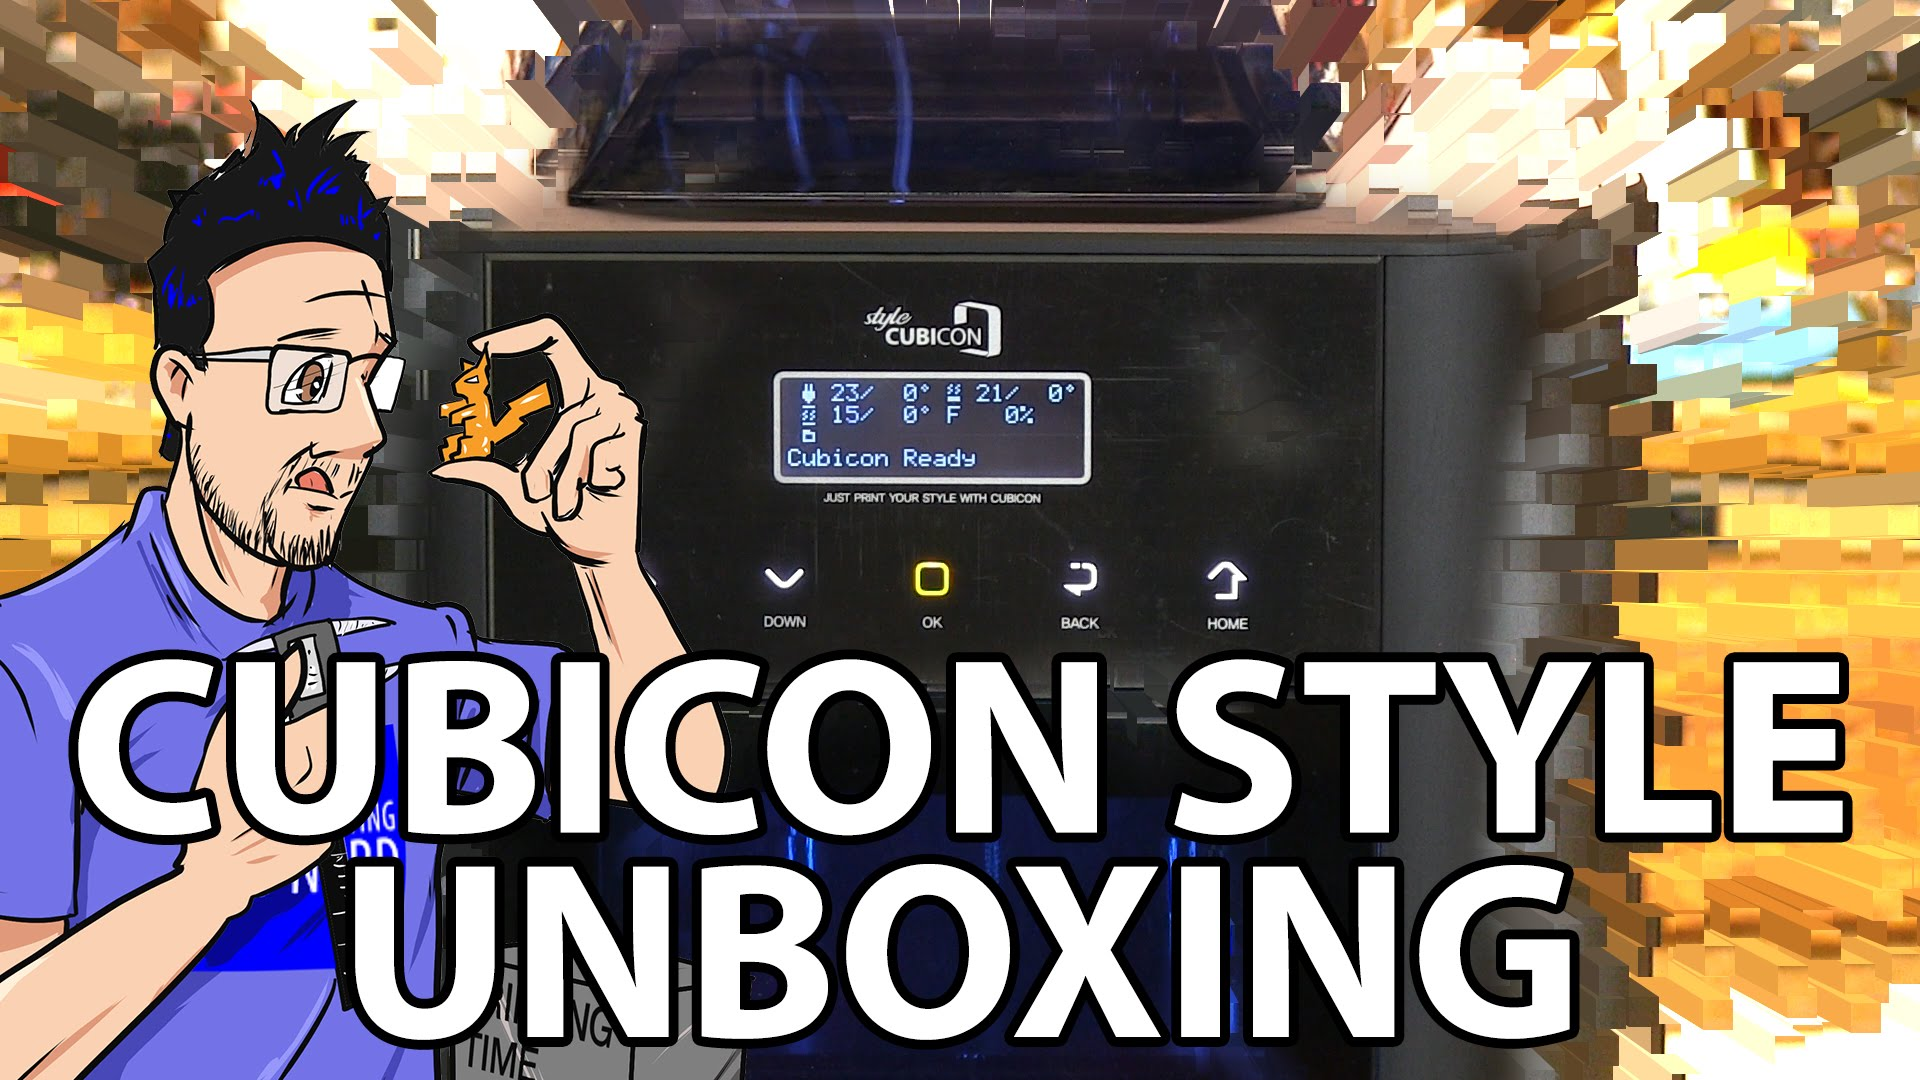 Unboxing the Cubicon Style 3D Printer and Getting the First Print